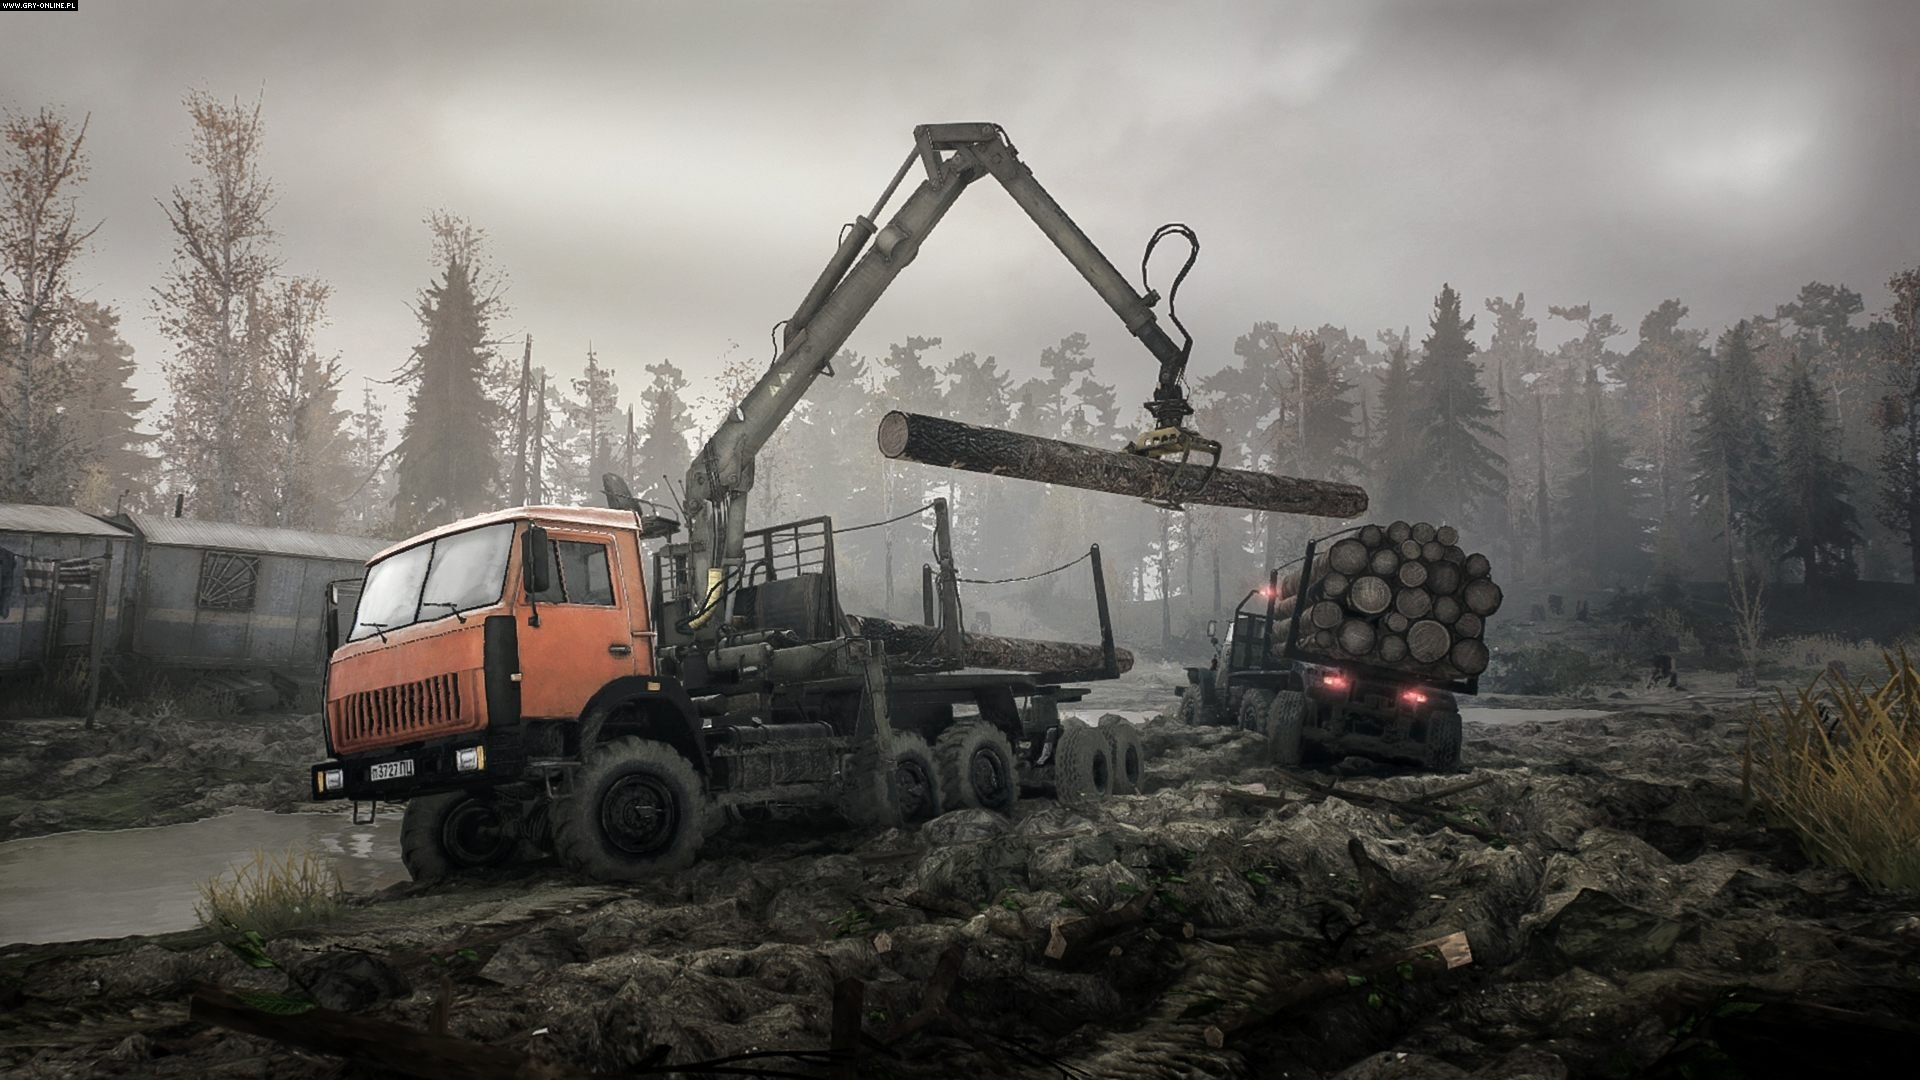 Spintires: MudRunner PC, PS4, XONE Gry Screen 5/8, Saber Interactive, Focus Home Interactive